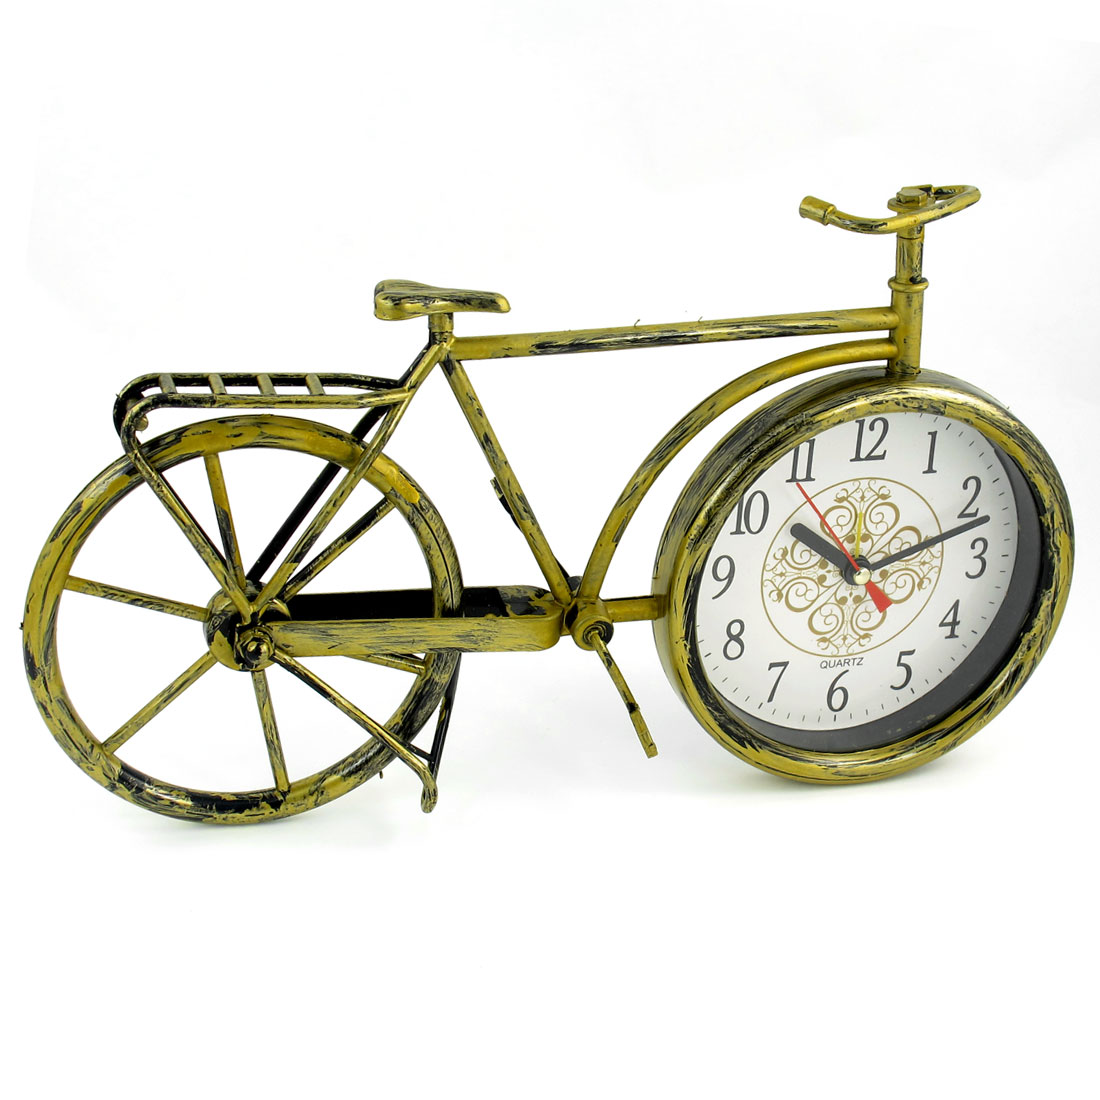 Home Bicycle Design Brozne Tone Plastic Desktop Quartz Clock